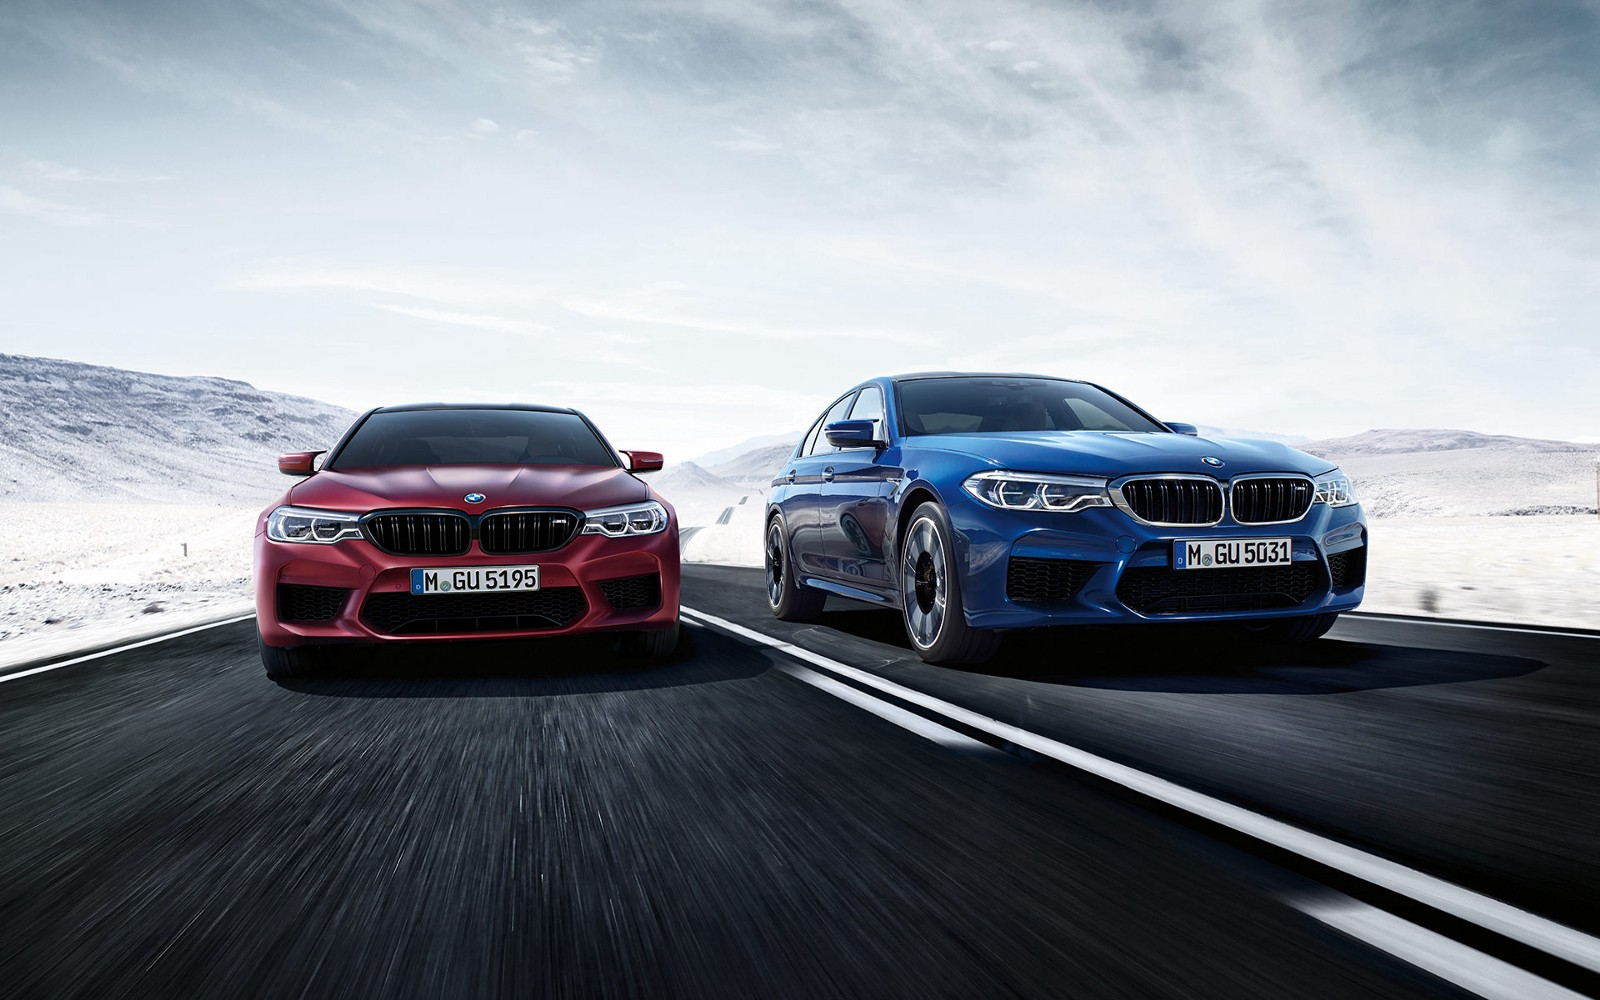 2018 Bmw M5 Launched In India The Carma Blog By Carpal